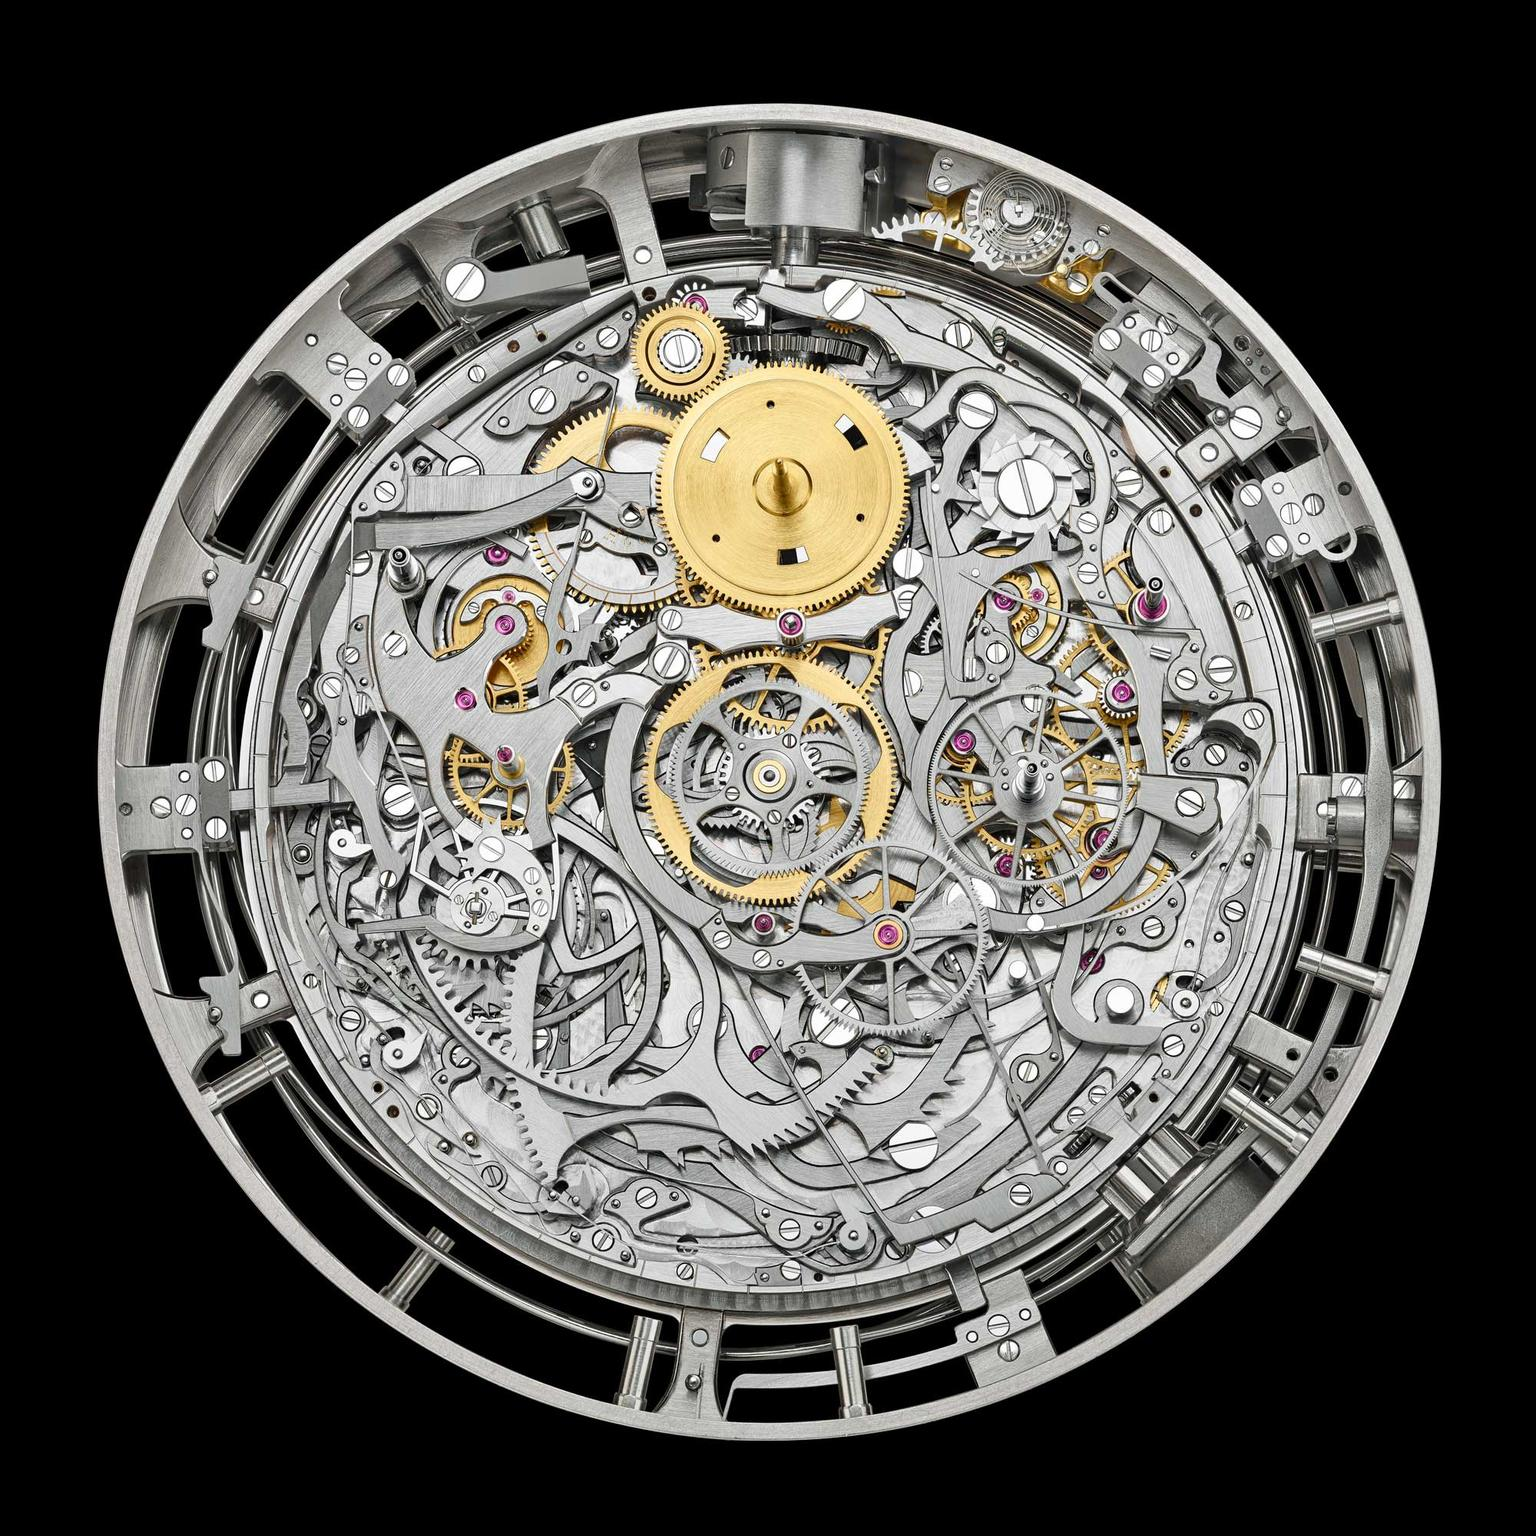 Vacheron Constantin Ref 57260 pocket watch movement